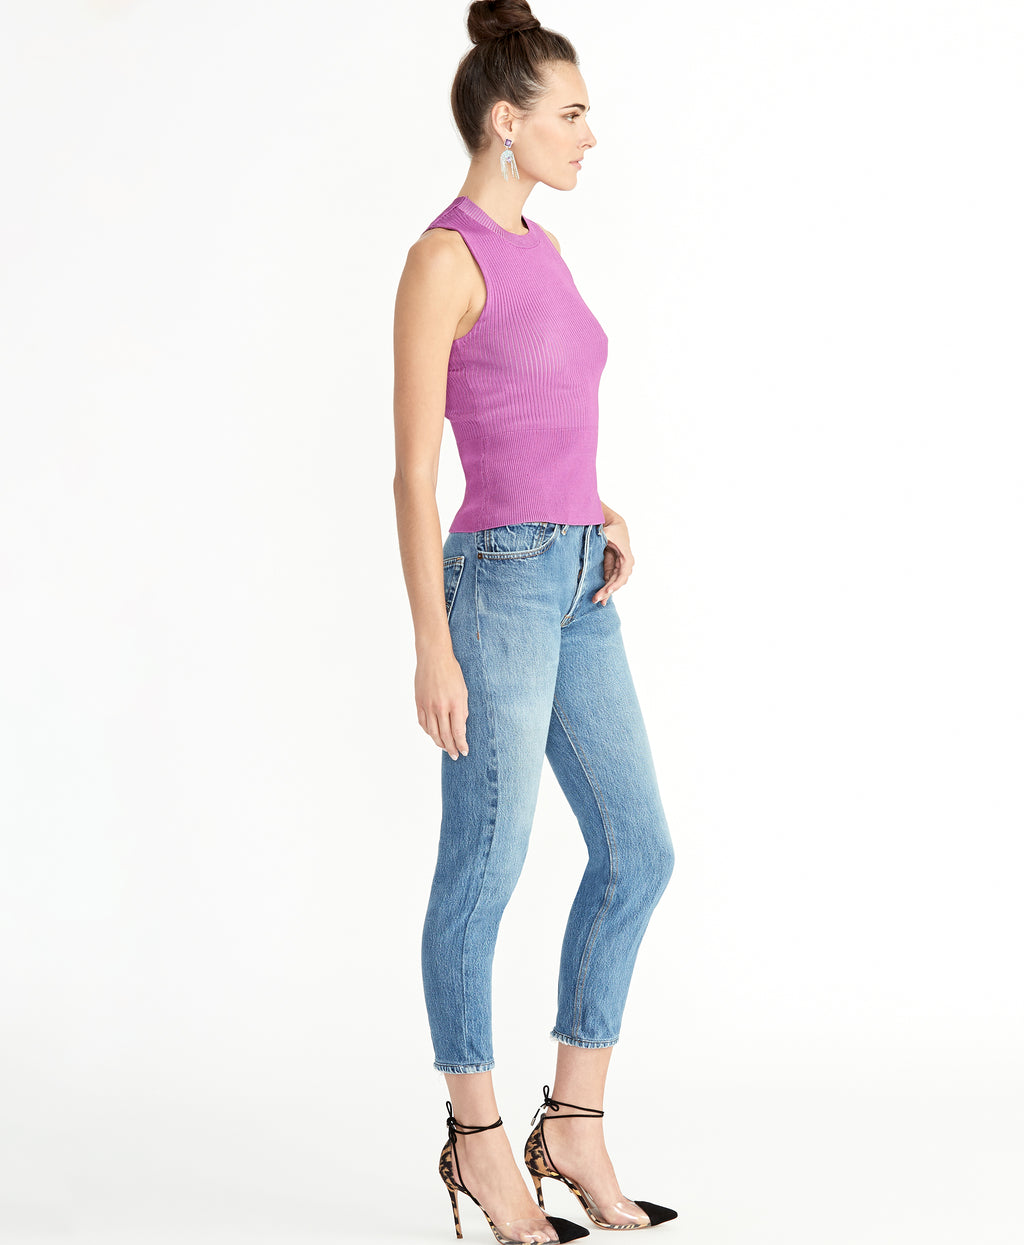 CARMELLA TOP | BRIGHT HYACINTH